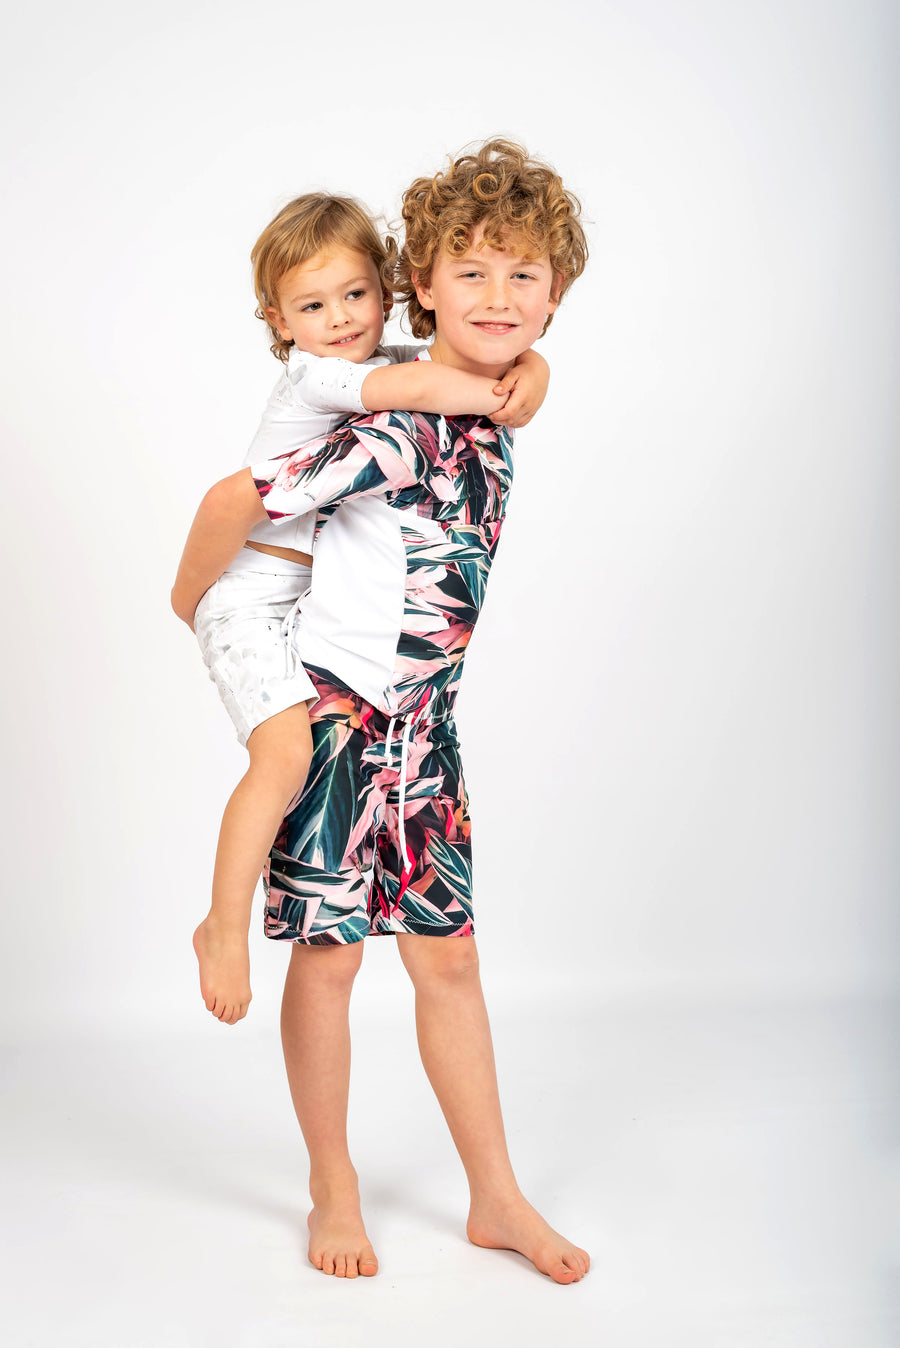 Ethical and sustainable swimwear for baby boy, toddler to tween boy, recycled ECONYL swim rashie made in Australia.